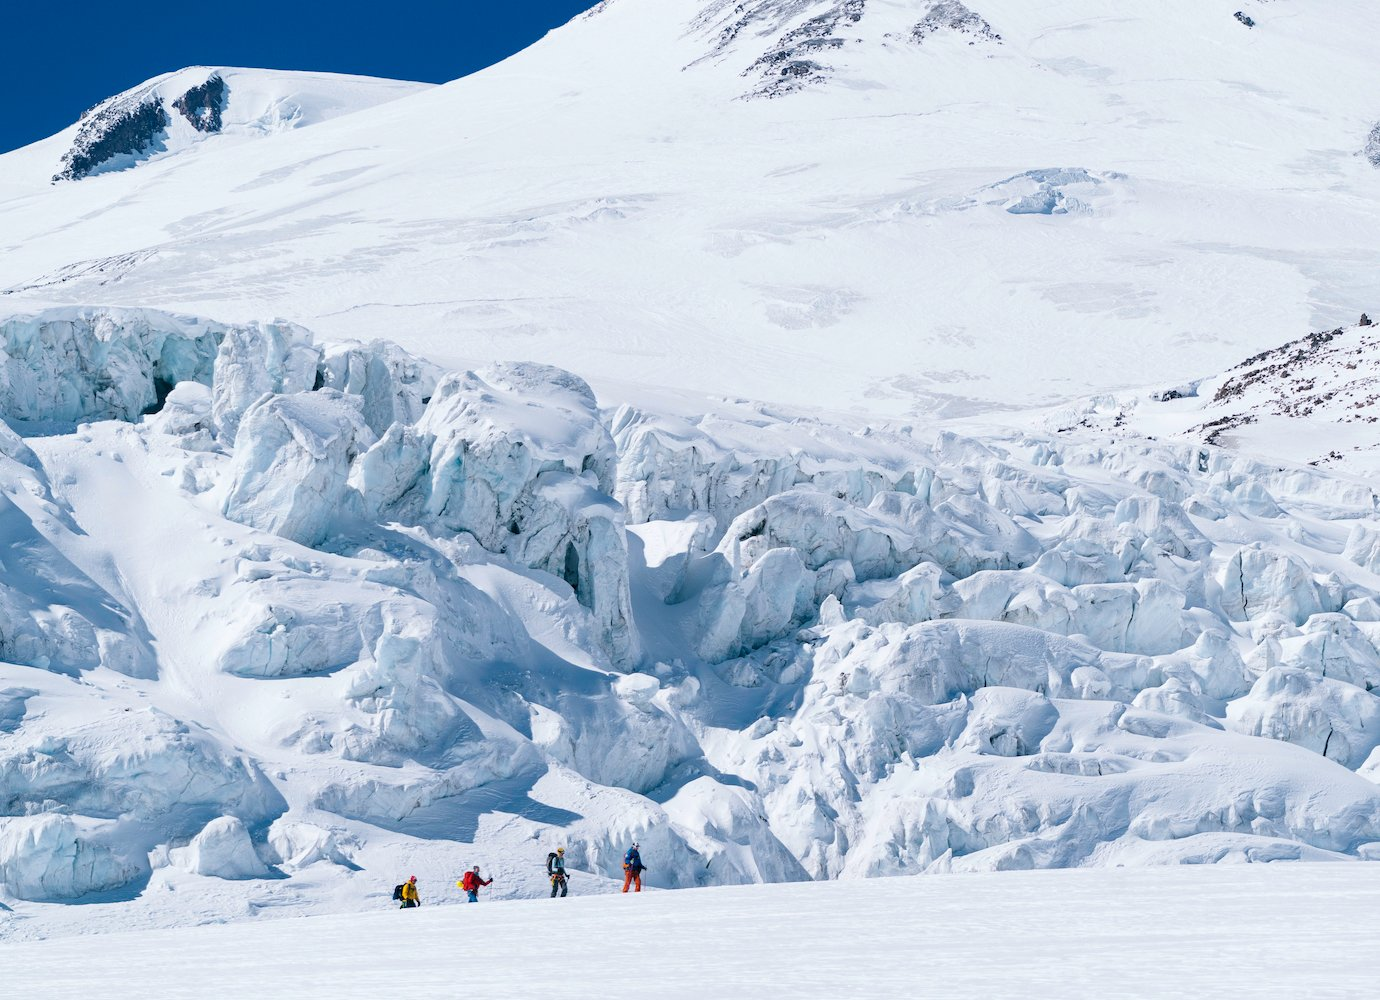 Endless horizons: a short film captures the beauty and battle of climbing Mount Elbrus